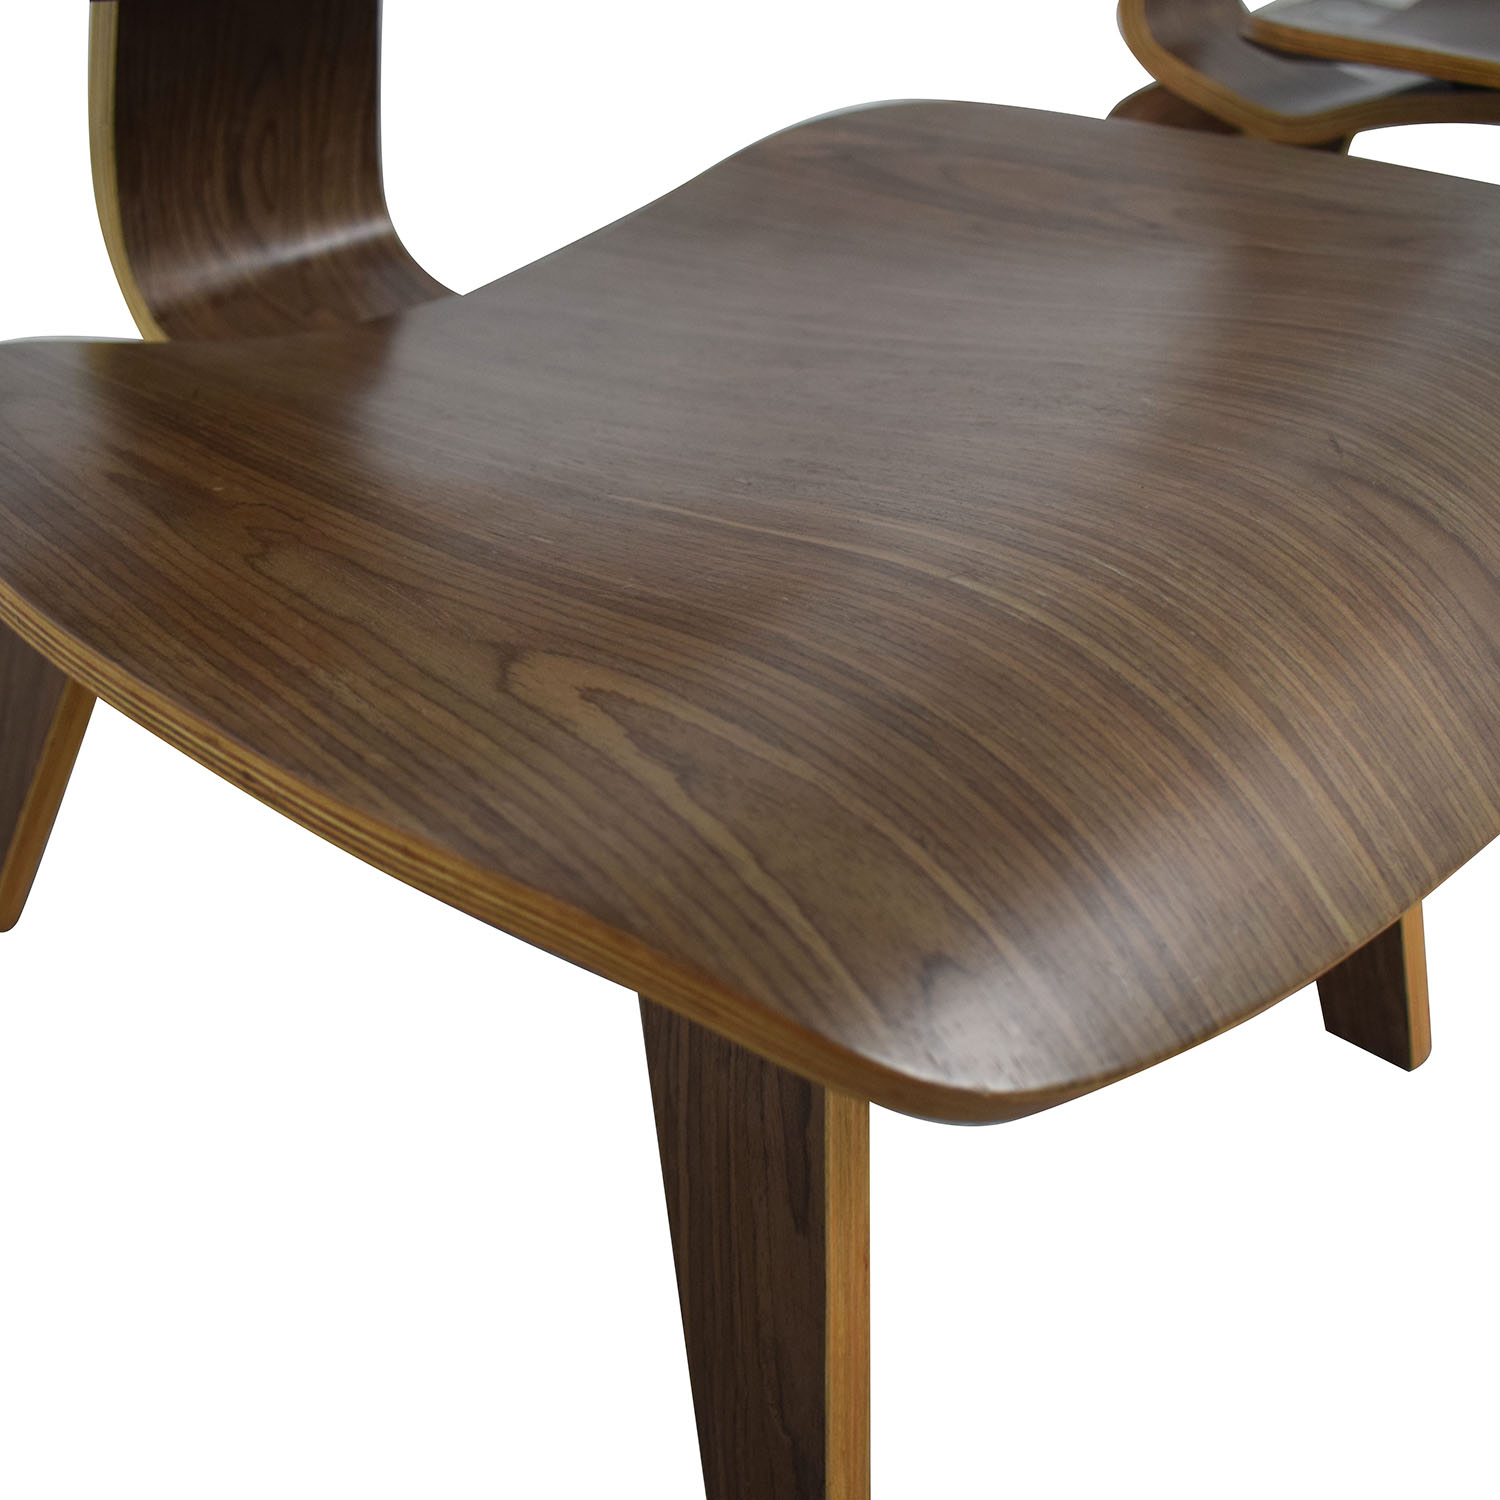 buy Modway Natural Fathom Plywood Dining Chairs Modway Chairs